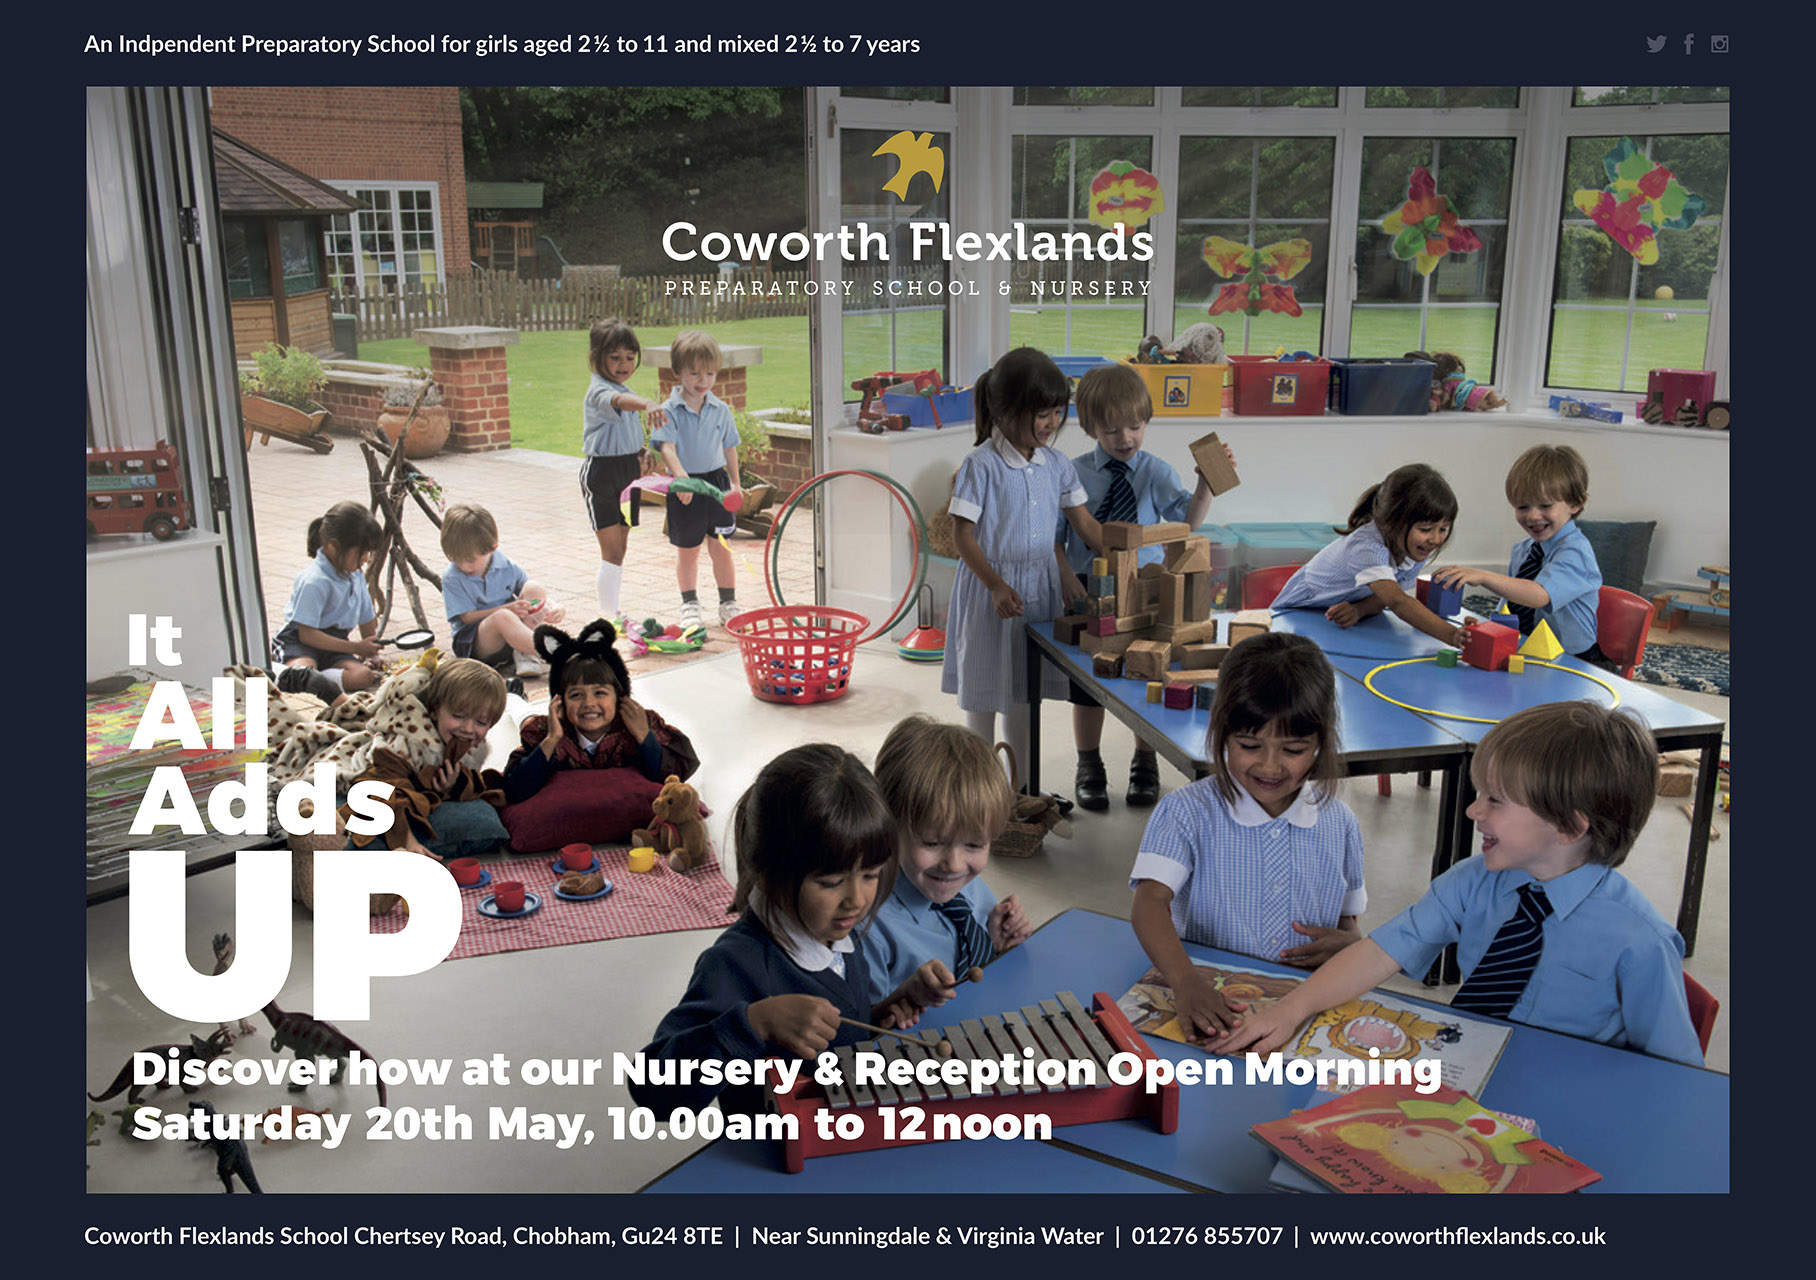 Coworth Flexlands School - Nursery & Reception Open Morning Sat 20th May 2017